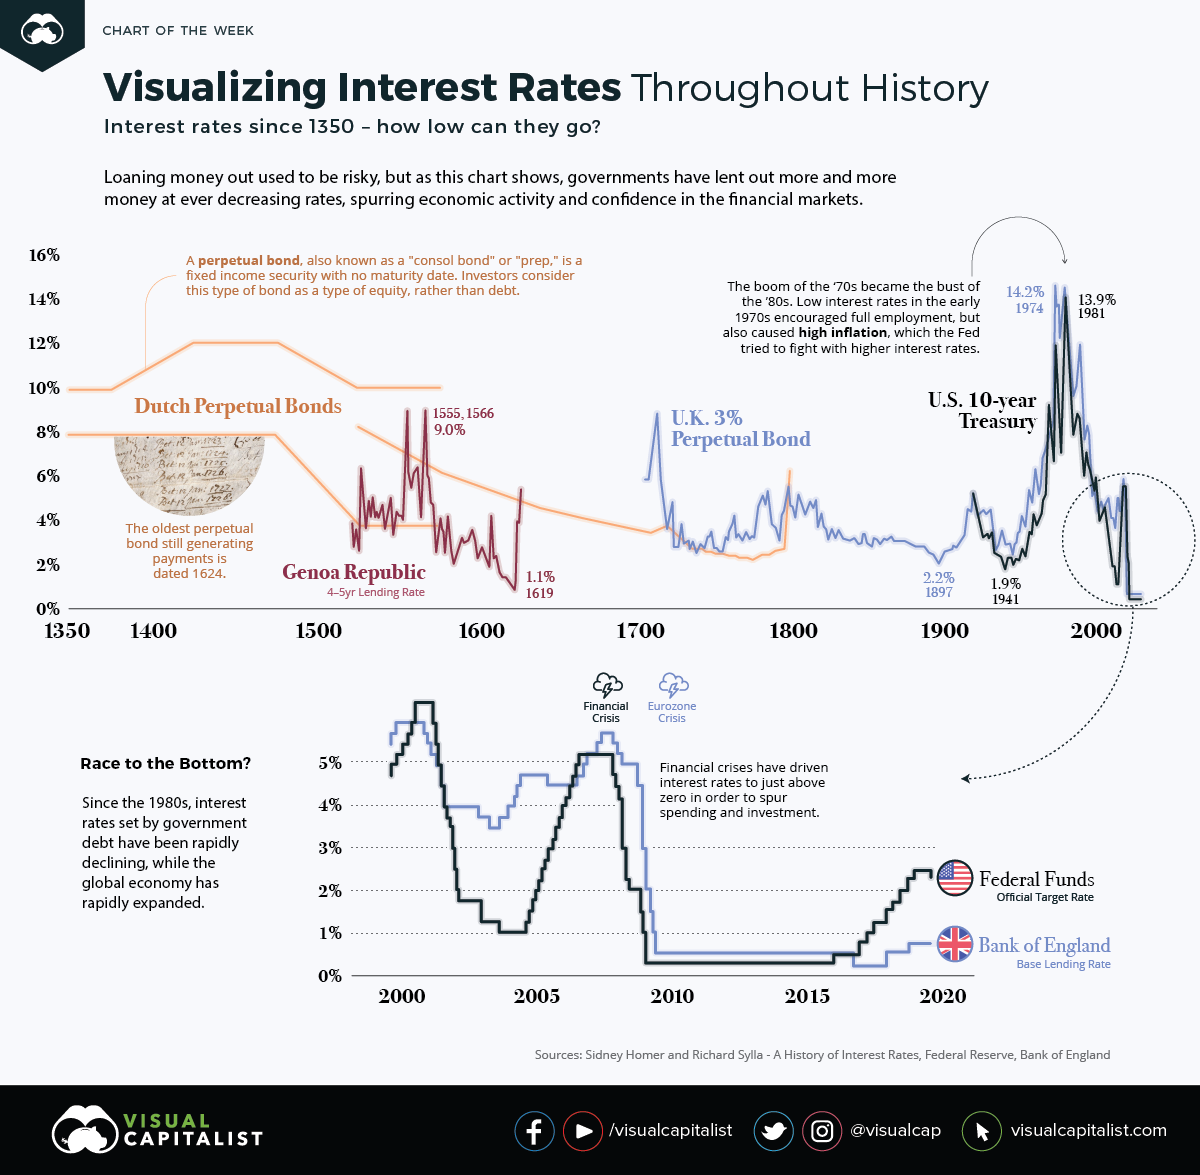 Interest rates throughout history